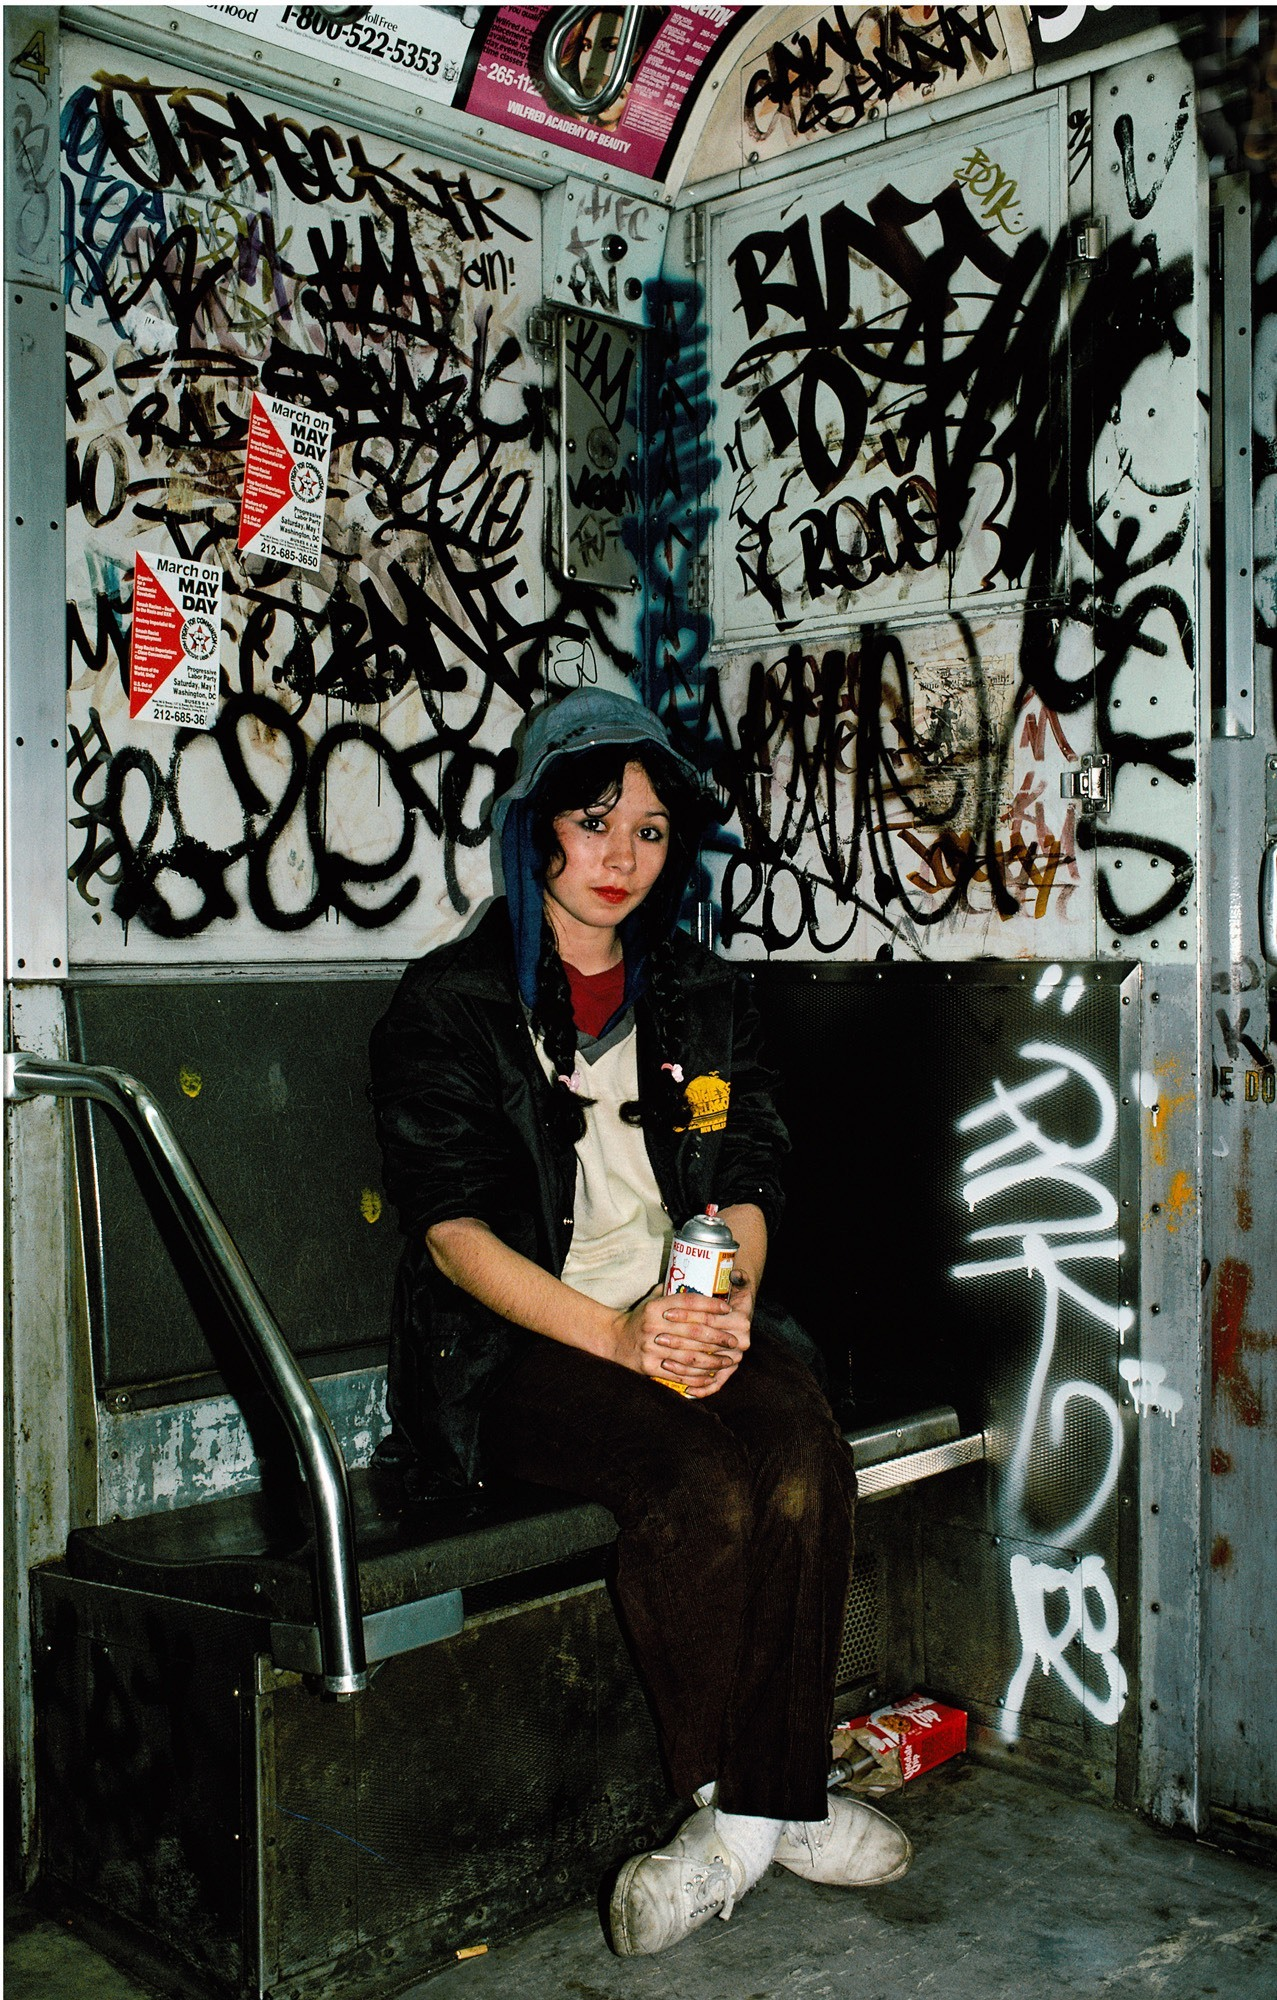 Lady pink on train 1982 copyright marthacooper courtesy steven kasher gallery new york